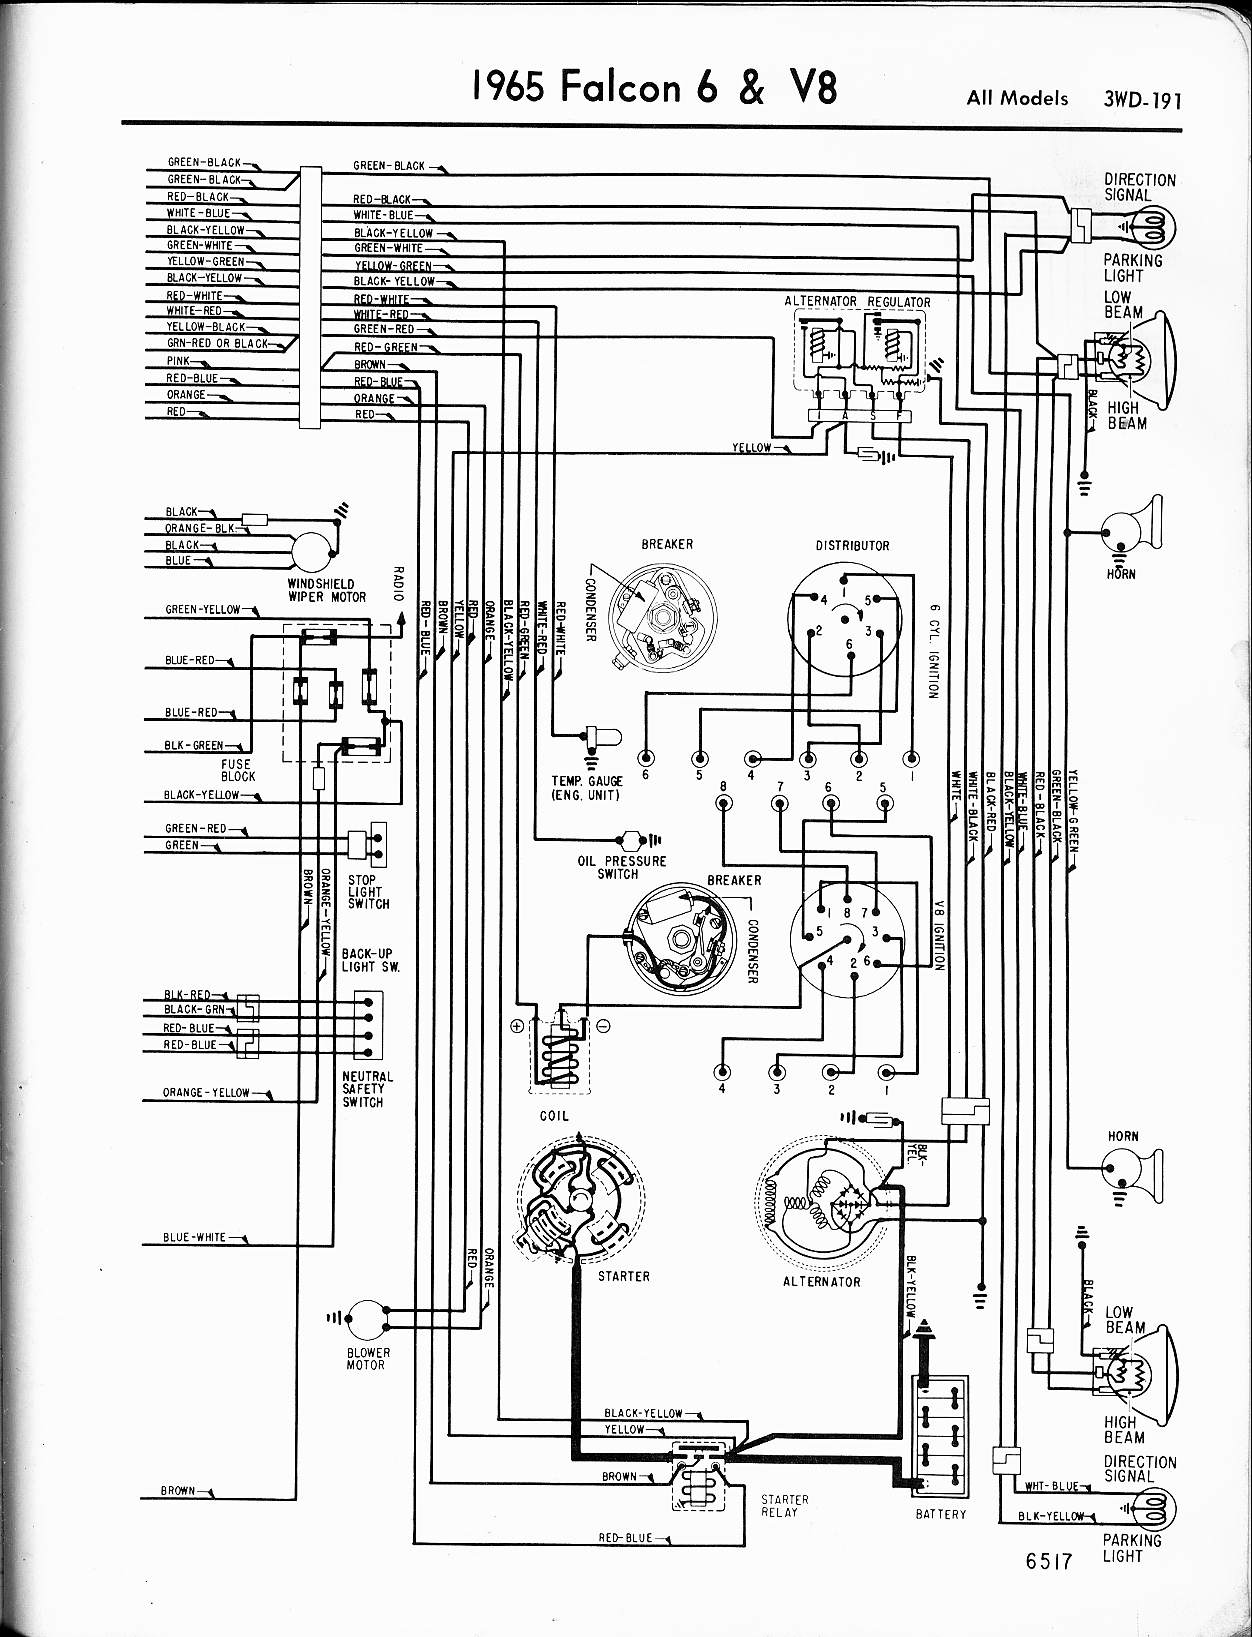 MWire5765 191 engine wire diagram for 65 falcon 65 falcon hot rod \u2022 wiring ford falcon ignition switch wiring diagram at reclaimingppi.co